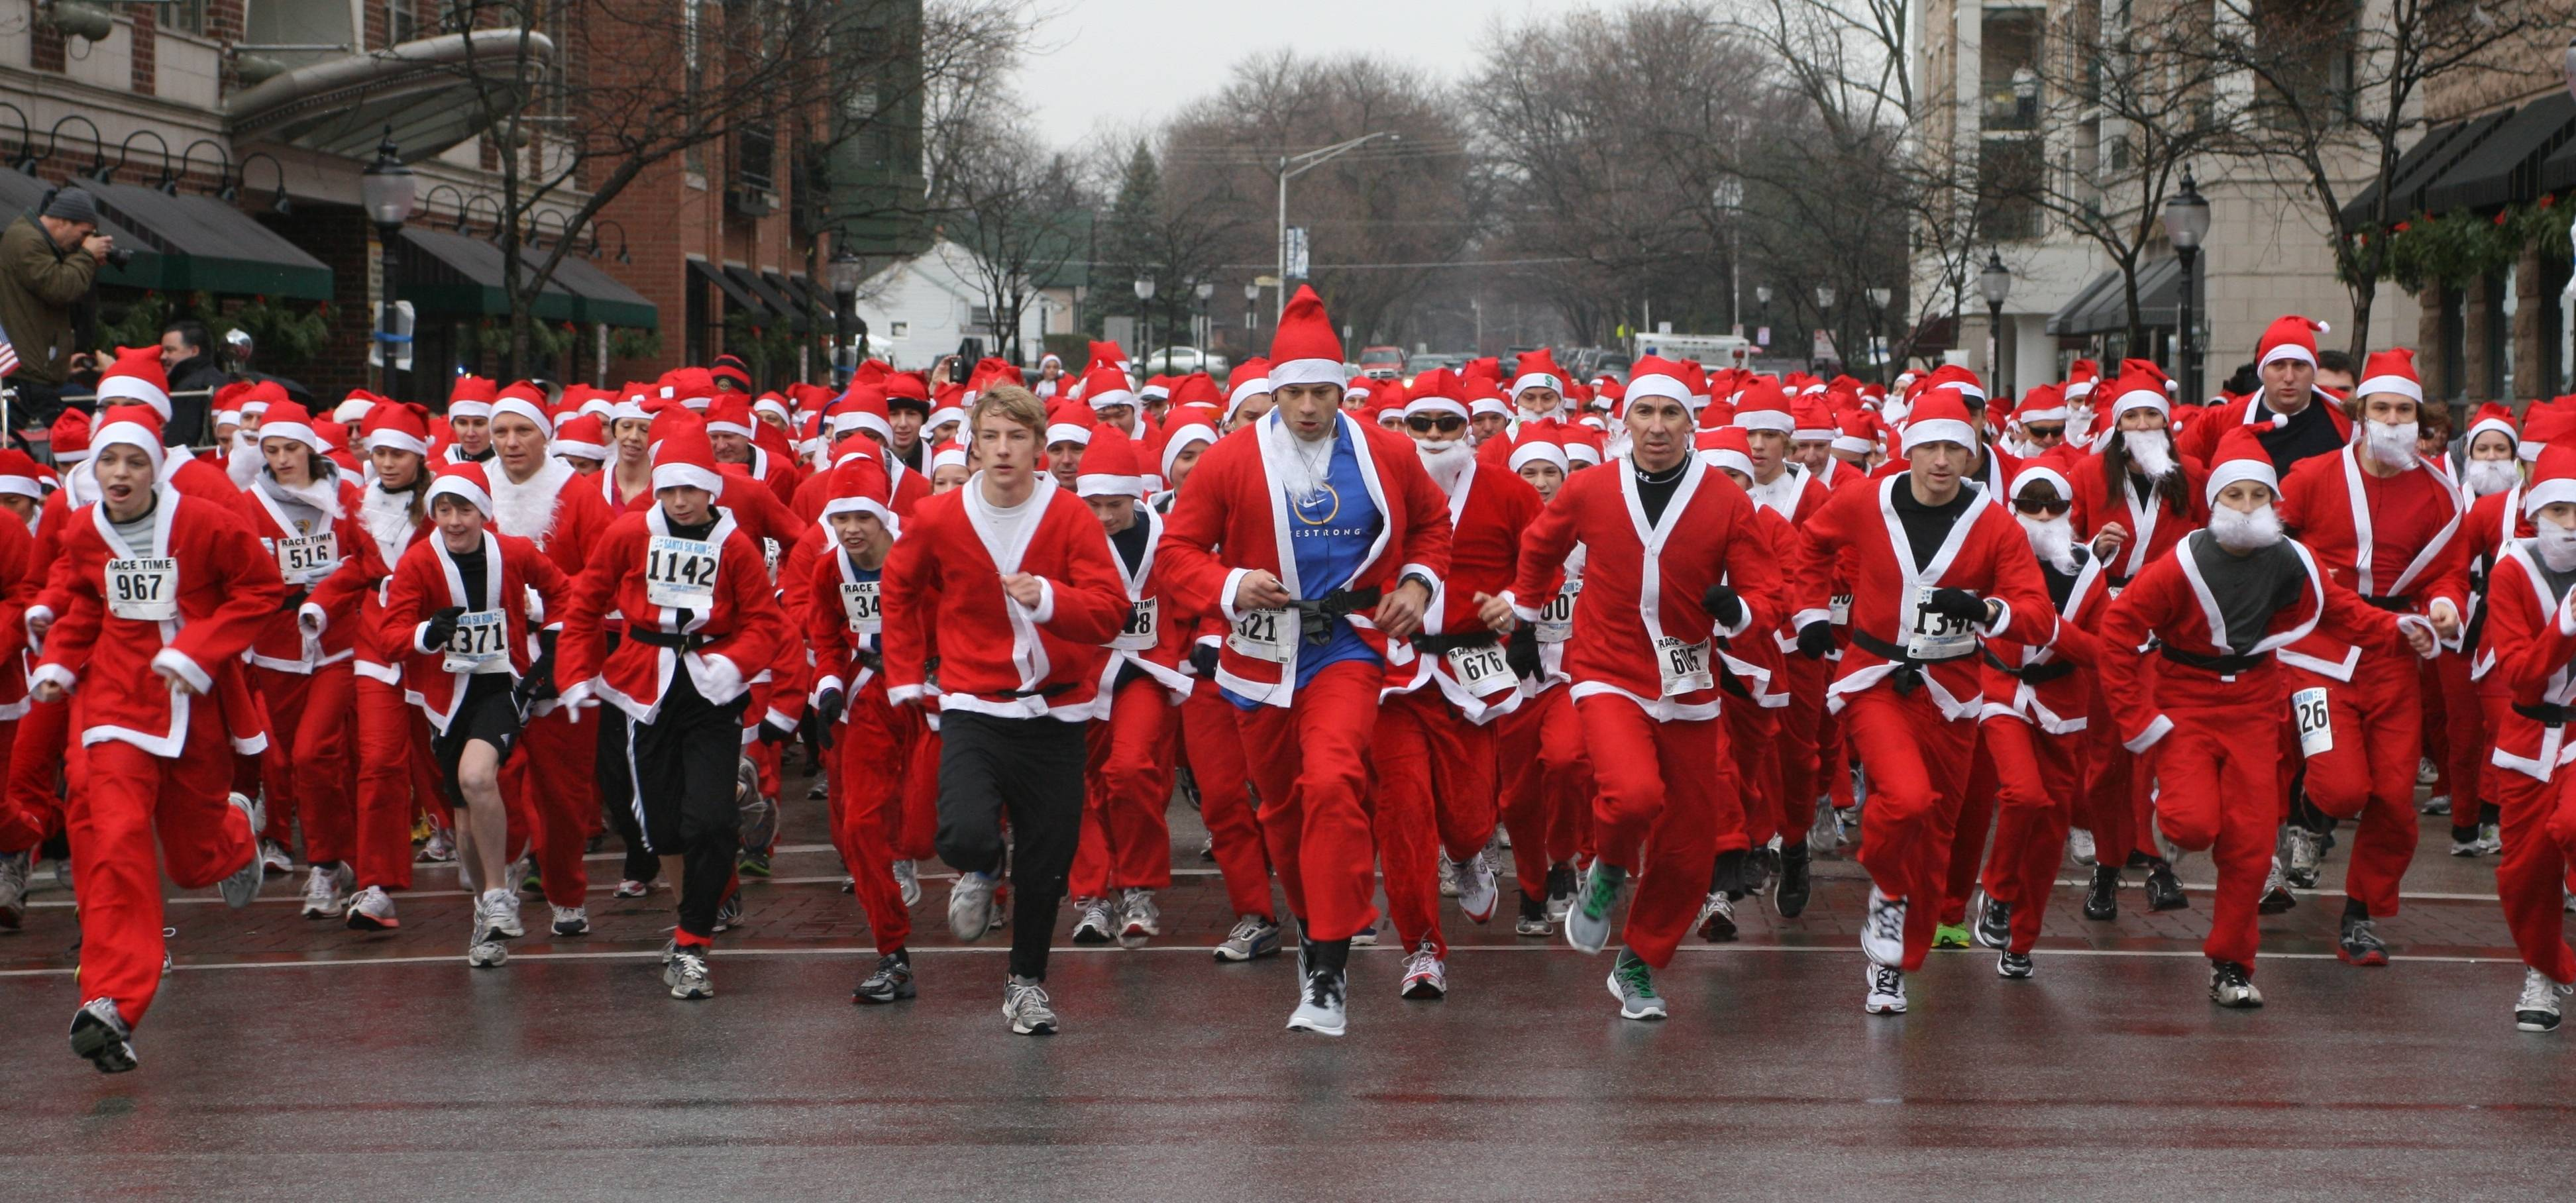 And they're off! Downtown Arlington Heights will be filled with people dressed in Santa suits for the Rotary Santa Run on December 1. The Rotary Club of Arlington Heights will be hosting the event. Register at www.rotarysantarun.org to be a part of the fun.